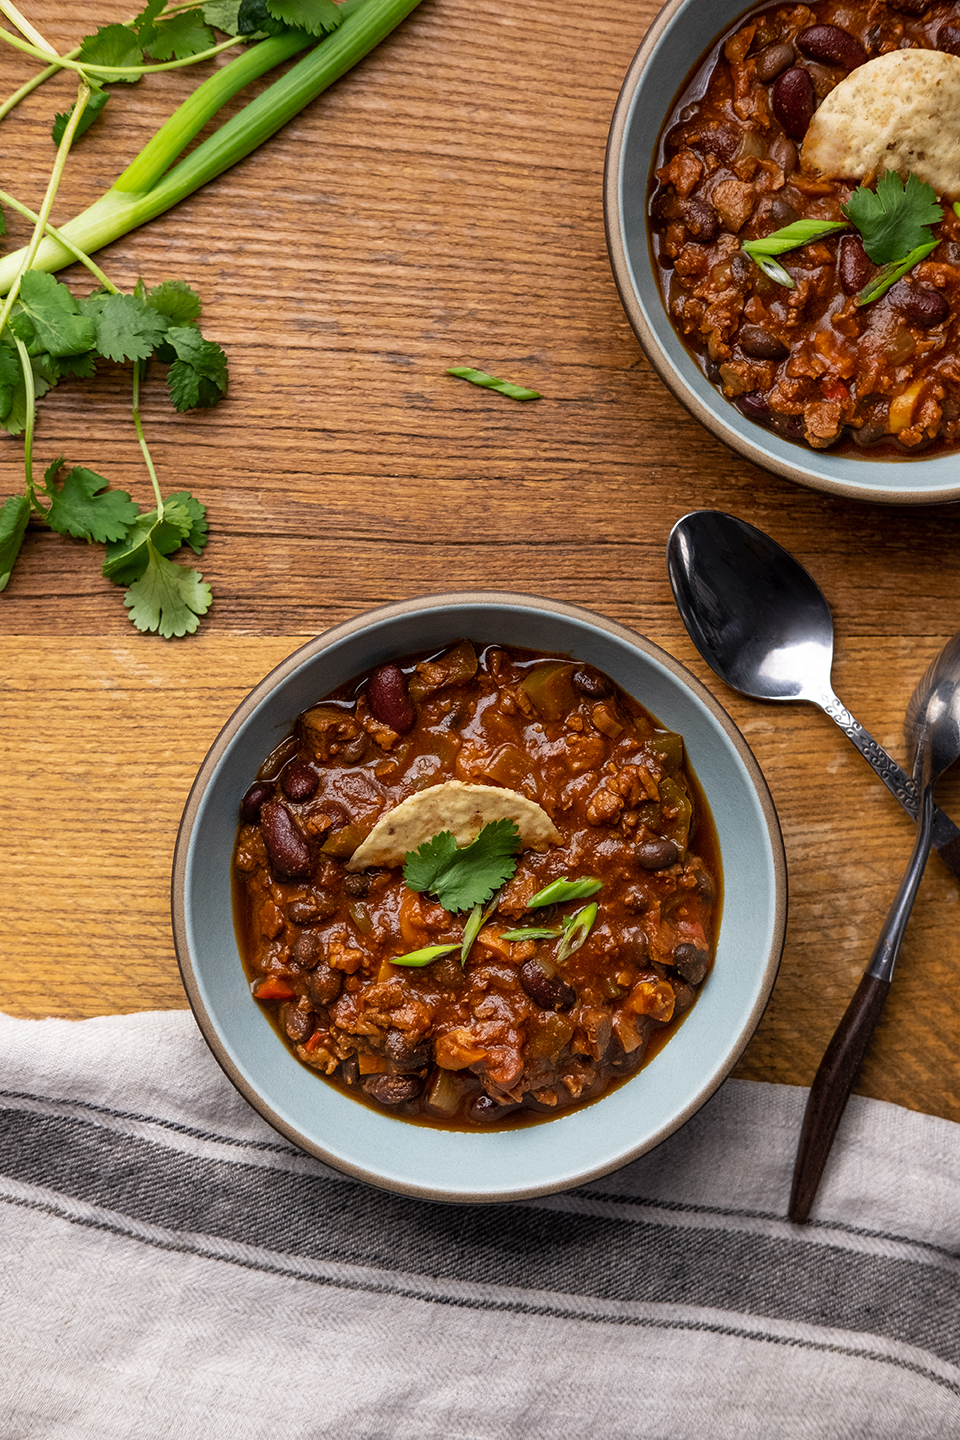 retouched bowls of vegetarian chili on a rustic wooden table